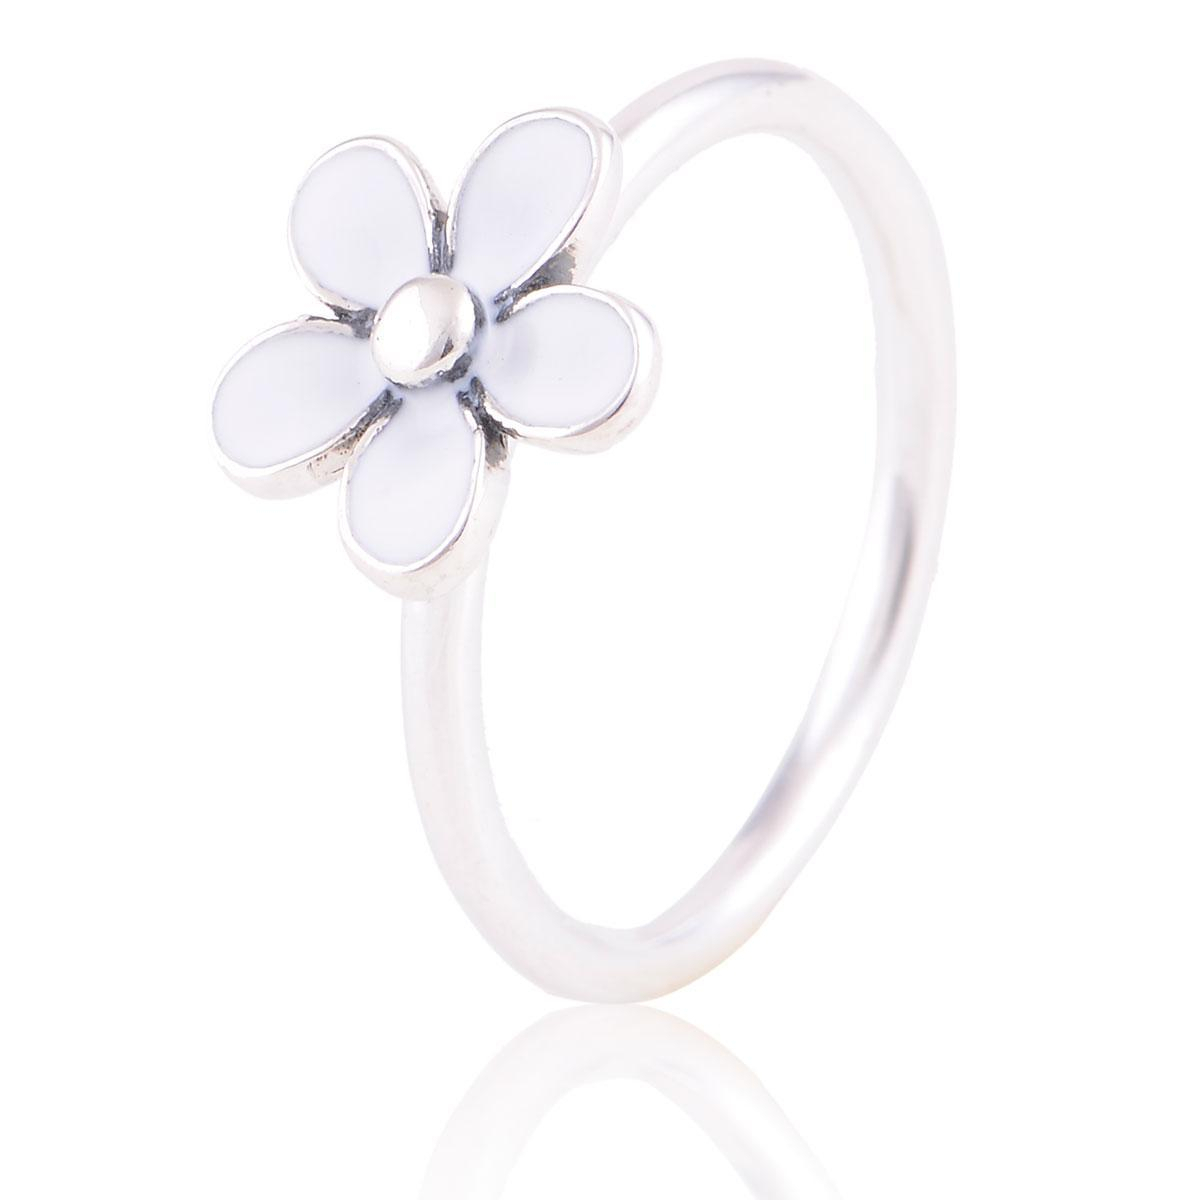 Daisy Flower Rings 925 Sterling Silver Pandora Style Fits For Women S S925 Sterling Silver Free Shipping Rip103h9 With Most Up To Date Daisy Flower Rings (View 4 of 25)